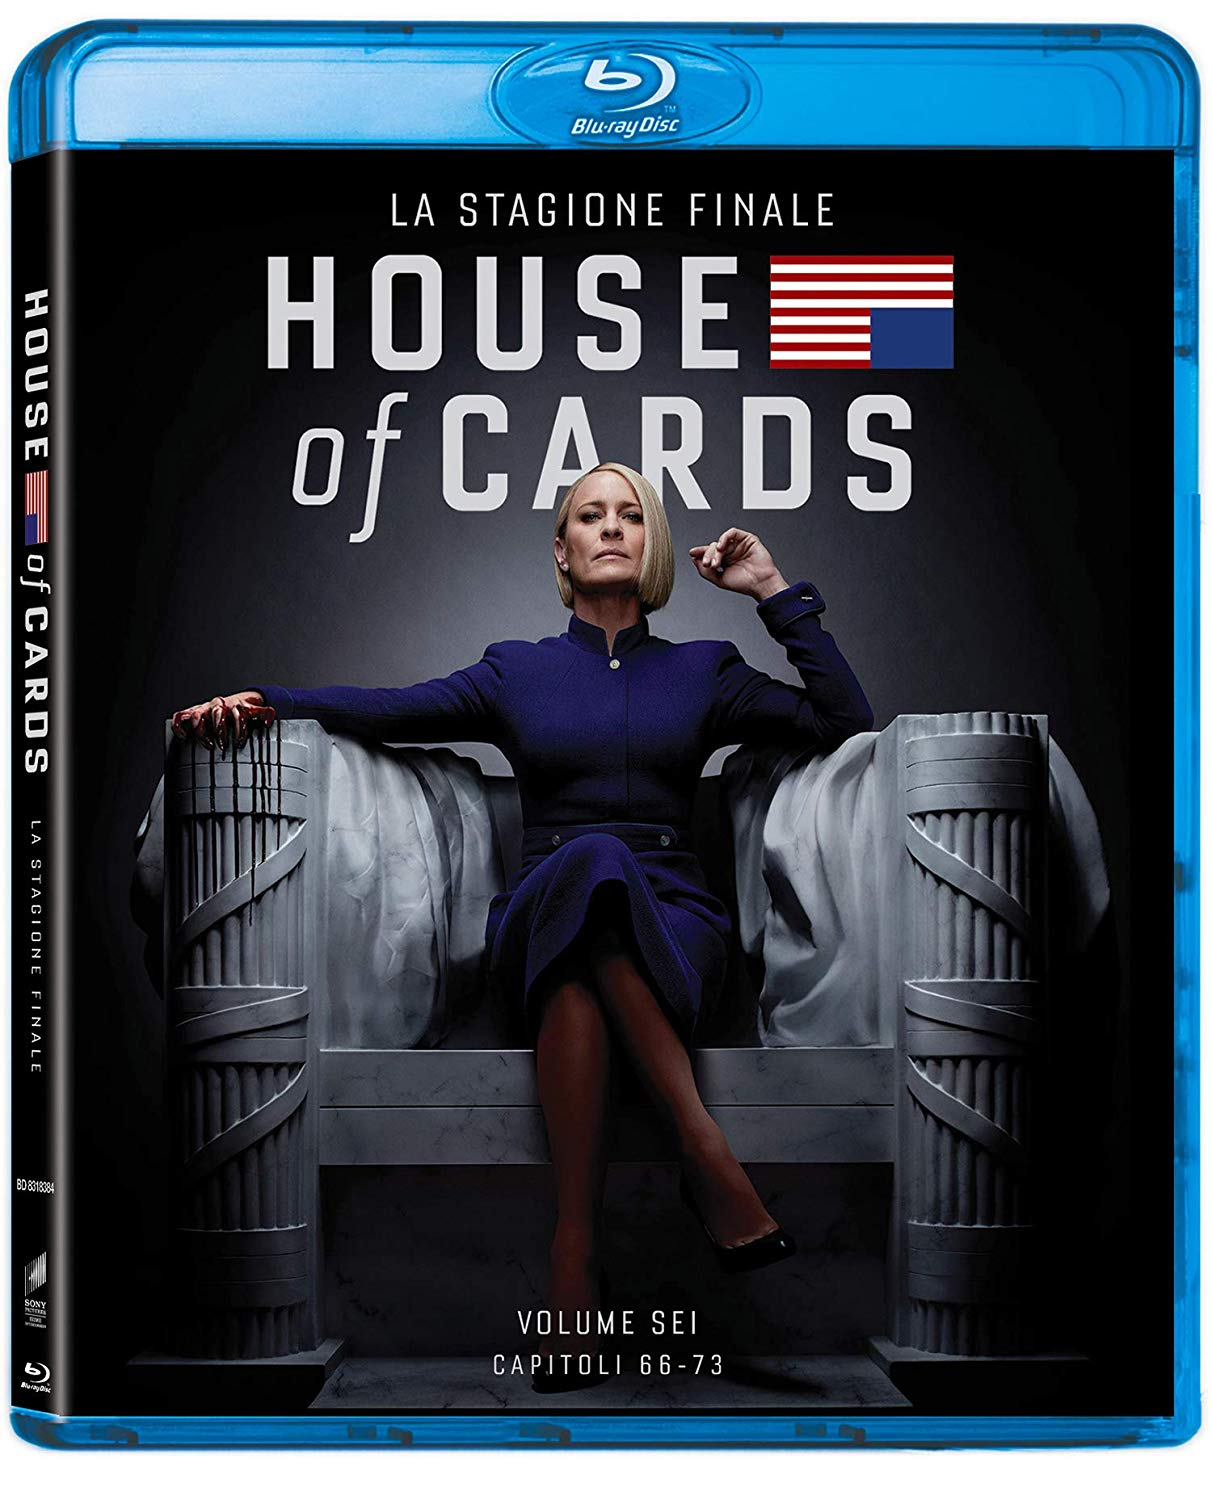 house_of_cards_6_blu_ray.jpg